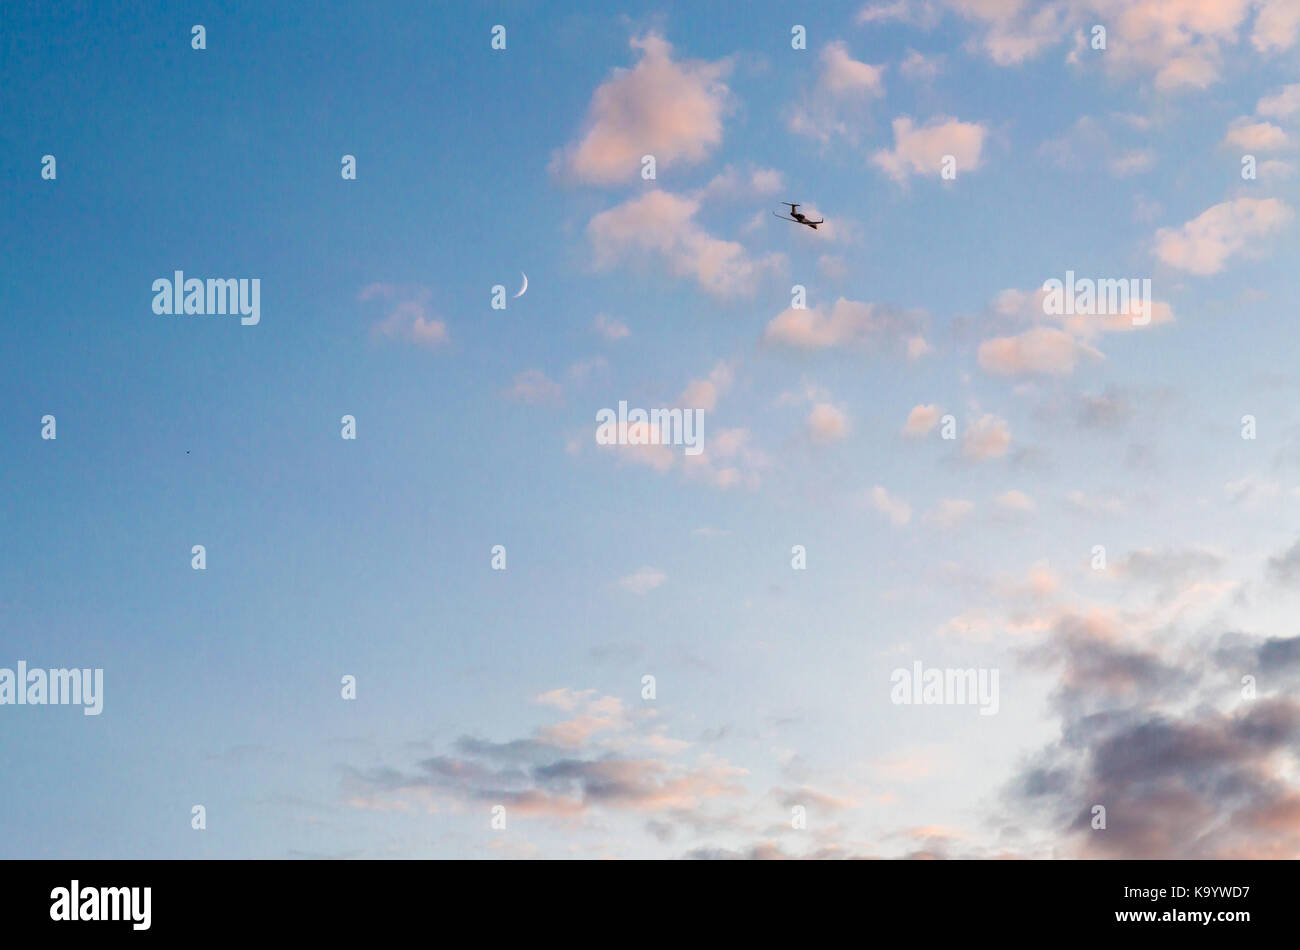 small private plane flying high in a late day sky with sliver of the moon visible, southampton, ny - Stock Image